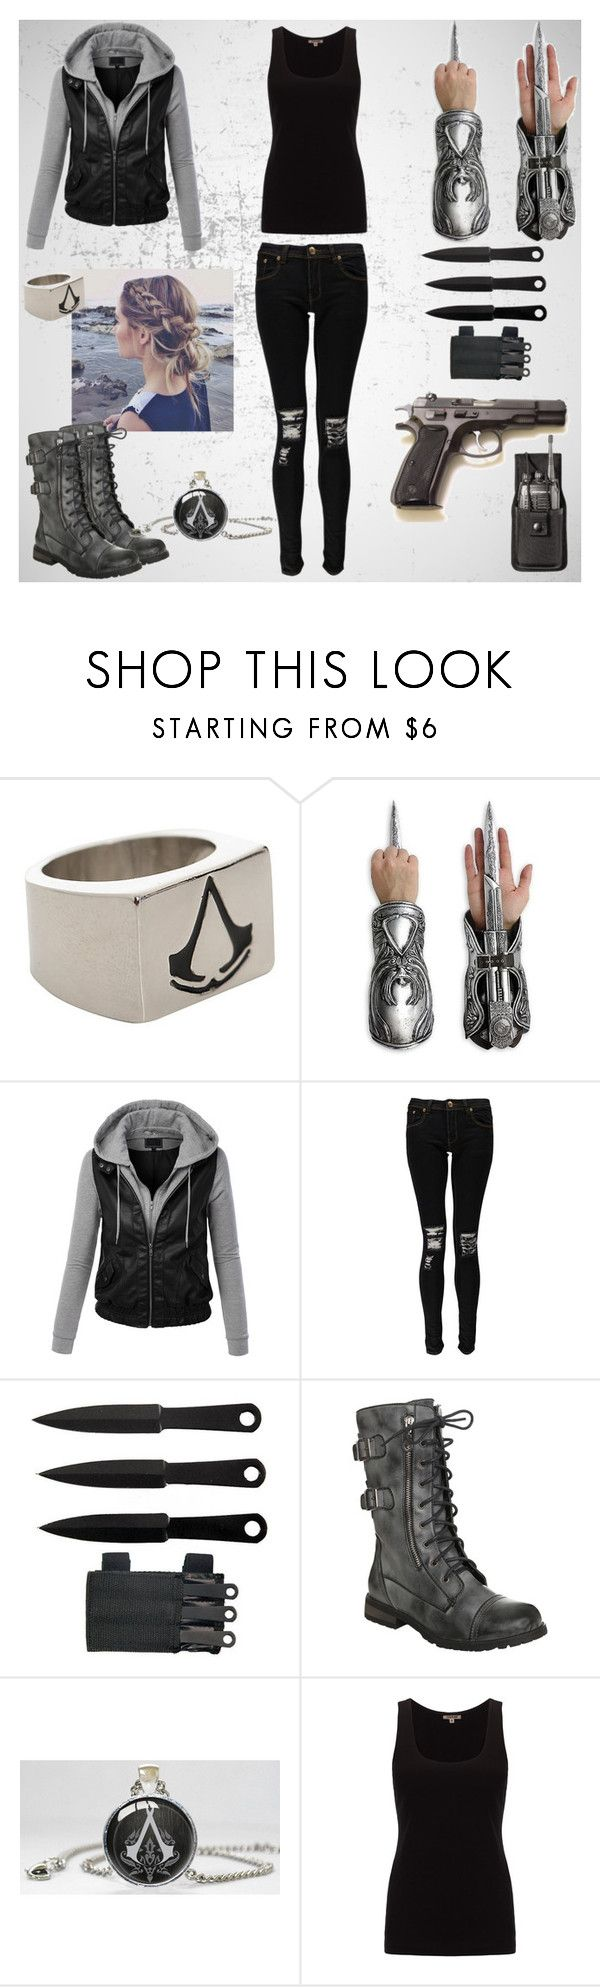 """Assassin girl/ Assassin's Creed modern"" by irishandpround ❤ liked on Polyvore featuring LE3NO, Boohoo, Jigsaw and modern"